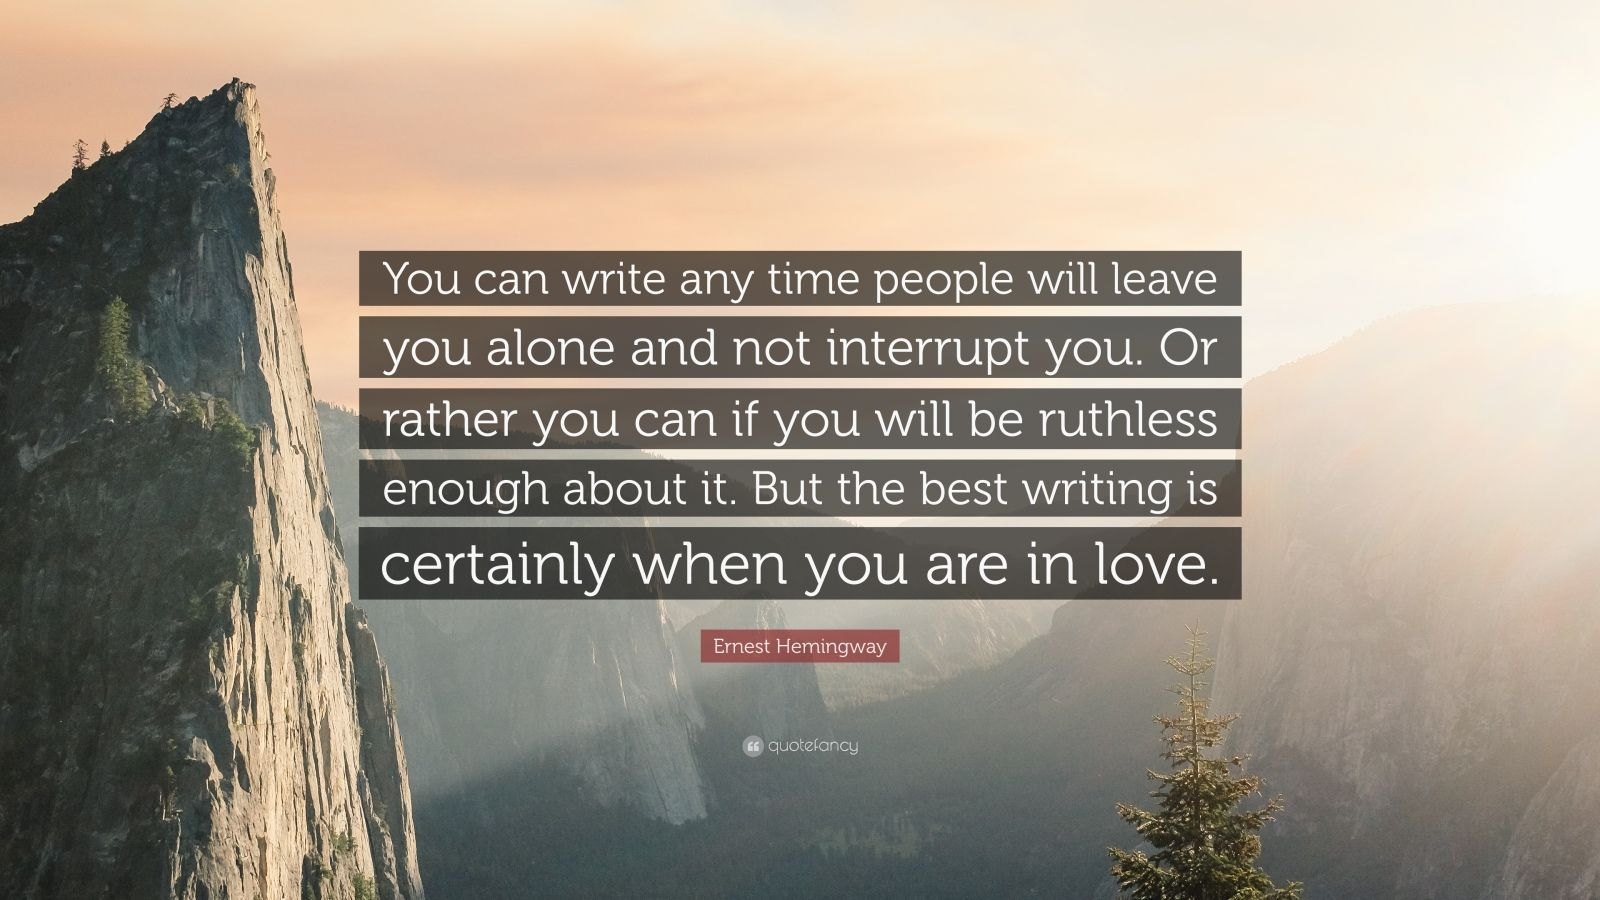 """Ernest Hemingway Quote: """"You can write any time people will leave you alone and not interrupt you. Or rather you can if you will be ruthless enough about it. But the best writing is certainly when you are in love."""""""